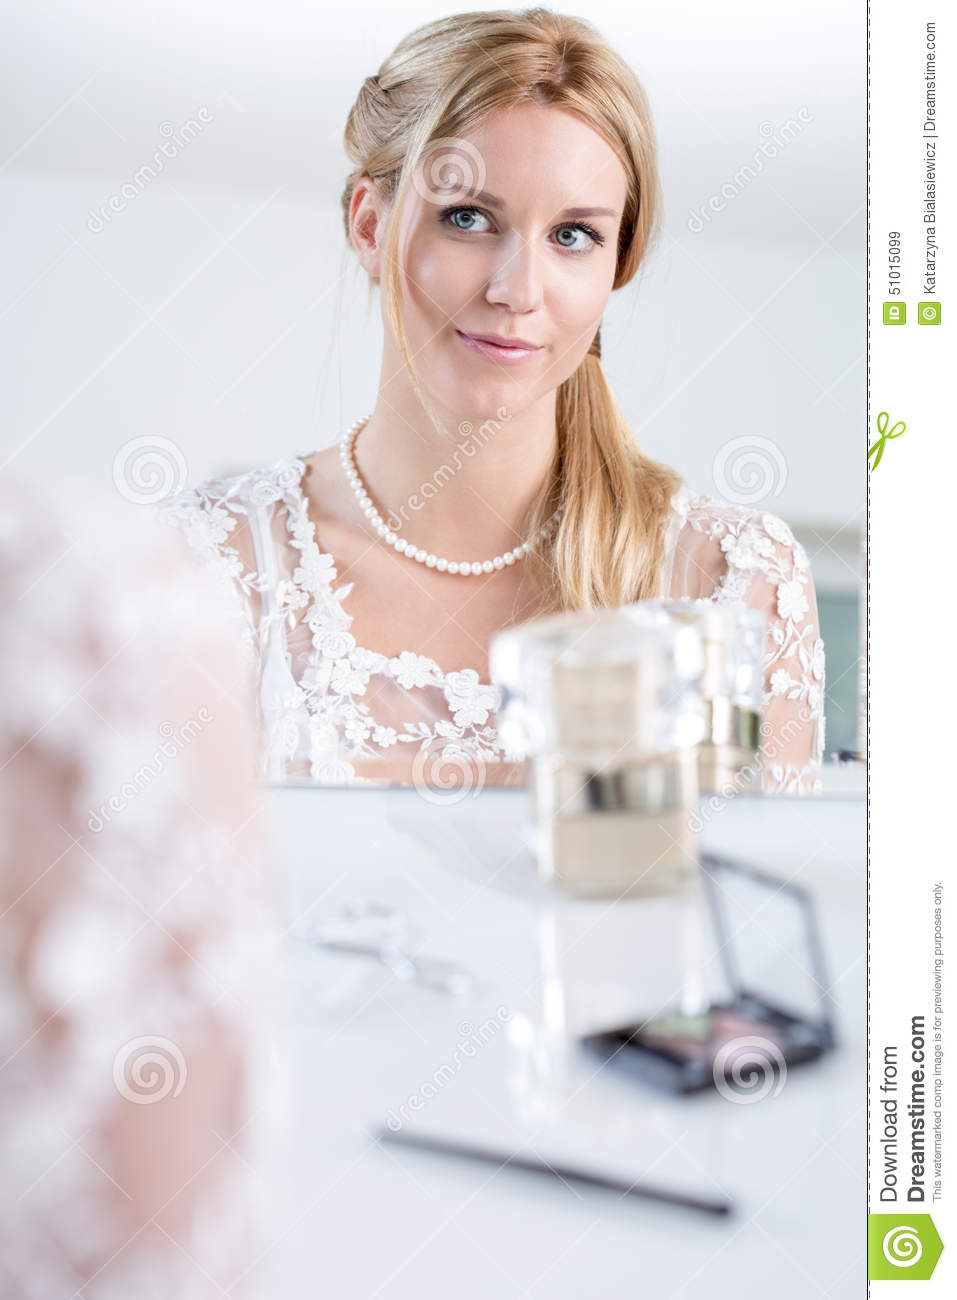 Bride With Ready Makeup Stock Photo - Image: 51015099